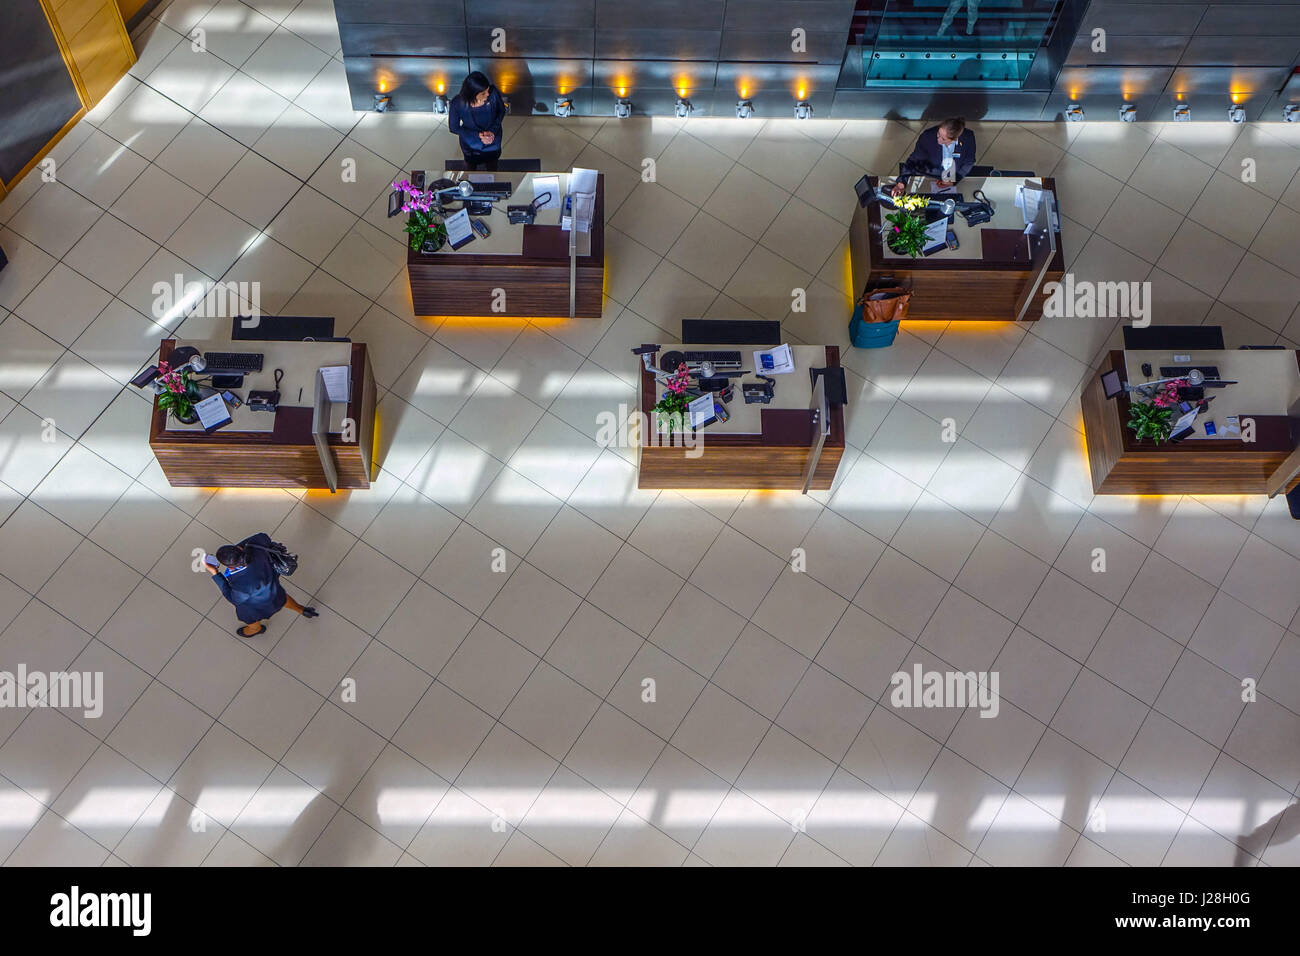 Reception desk area at Radisson Blu Airport hotel at London Stansted airport seen from above - Stock Image